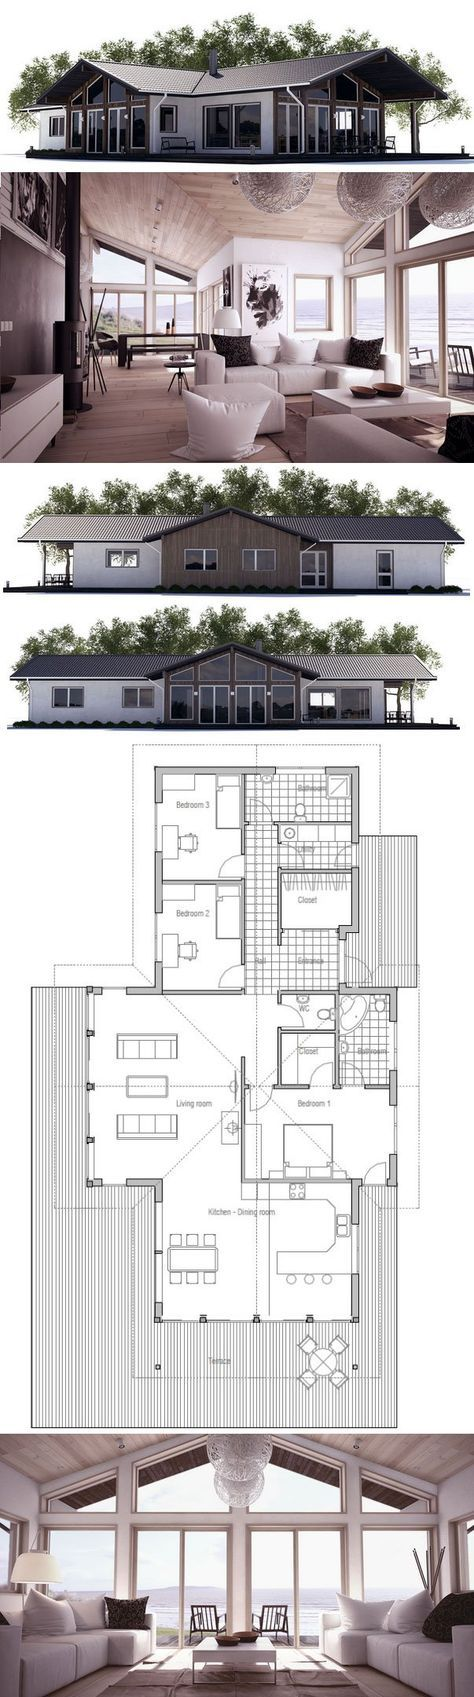 Small House Plan with three bedrooms and